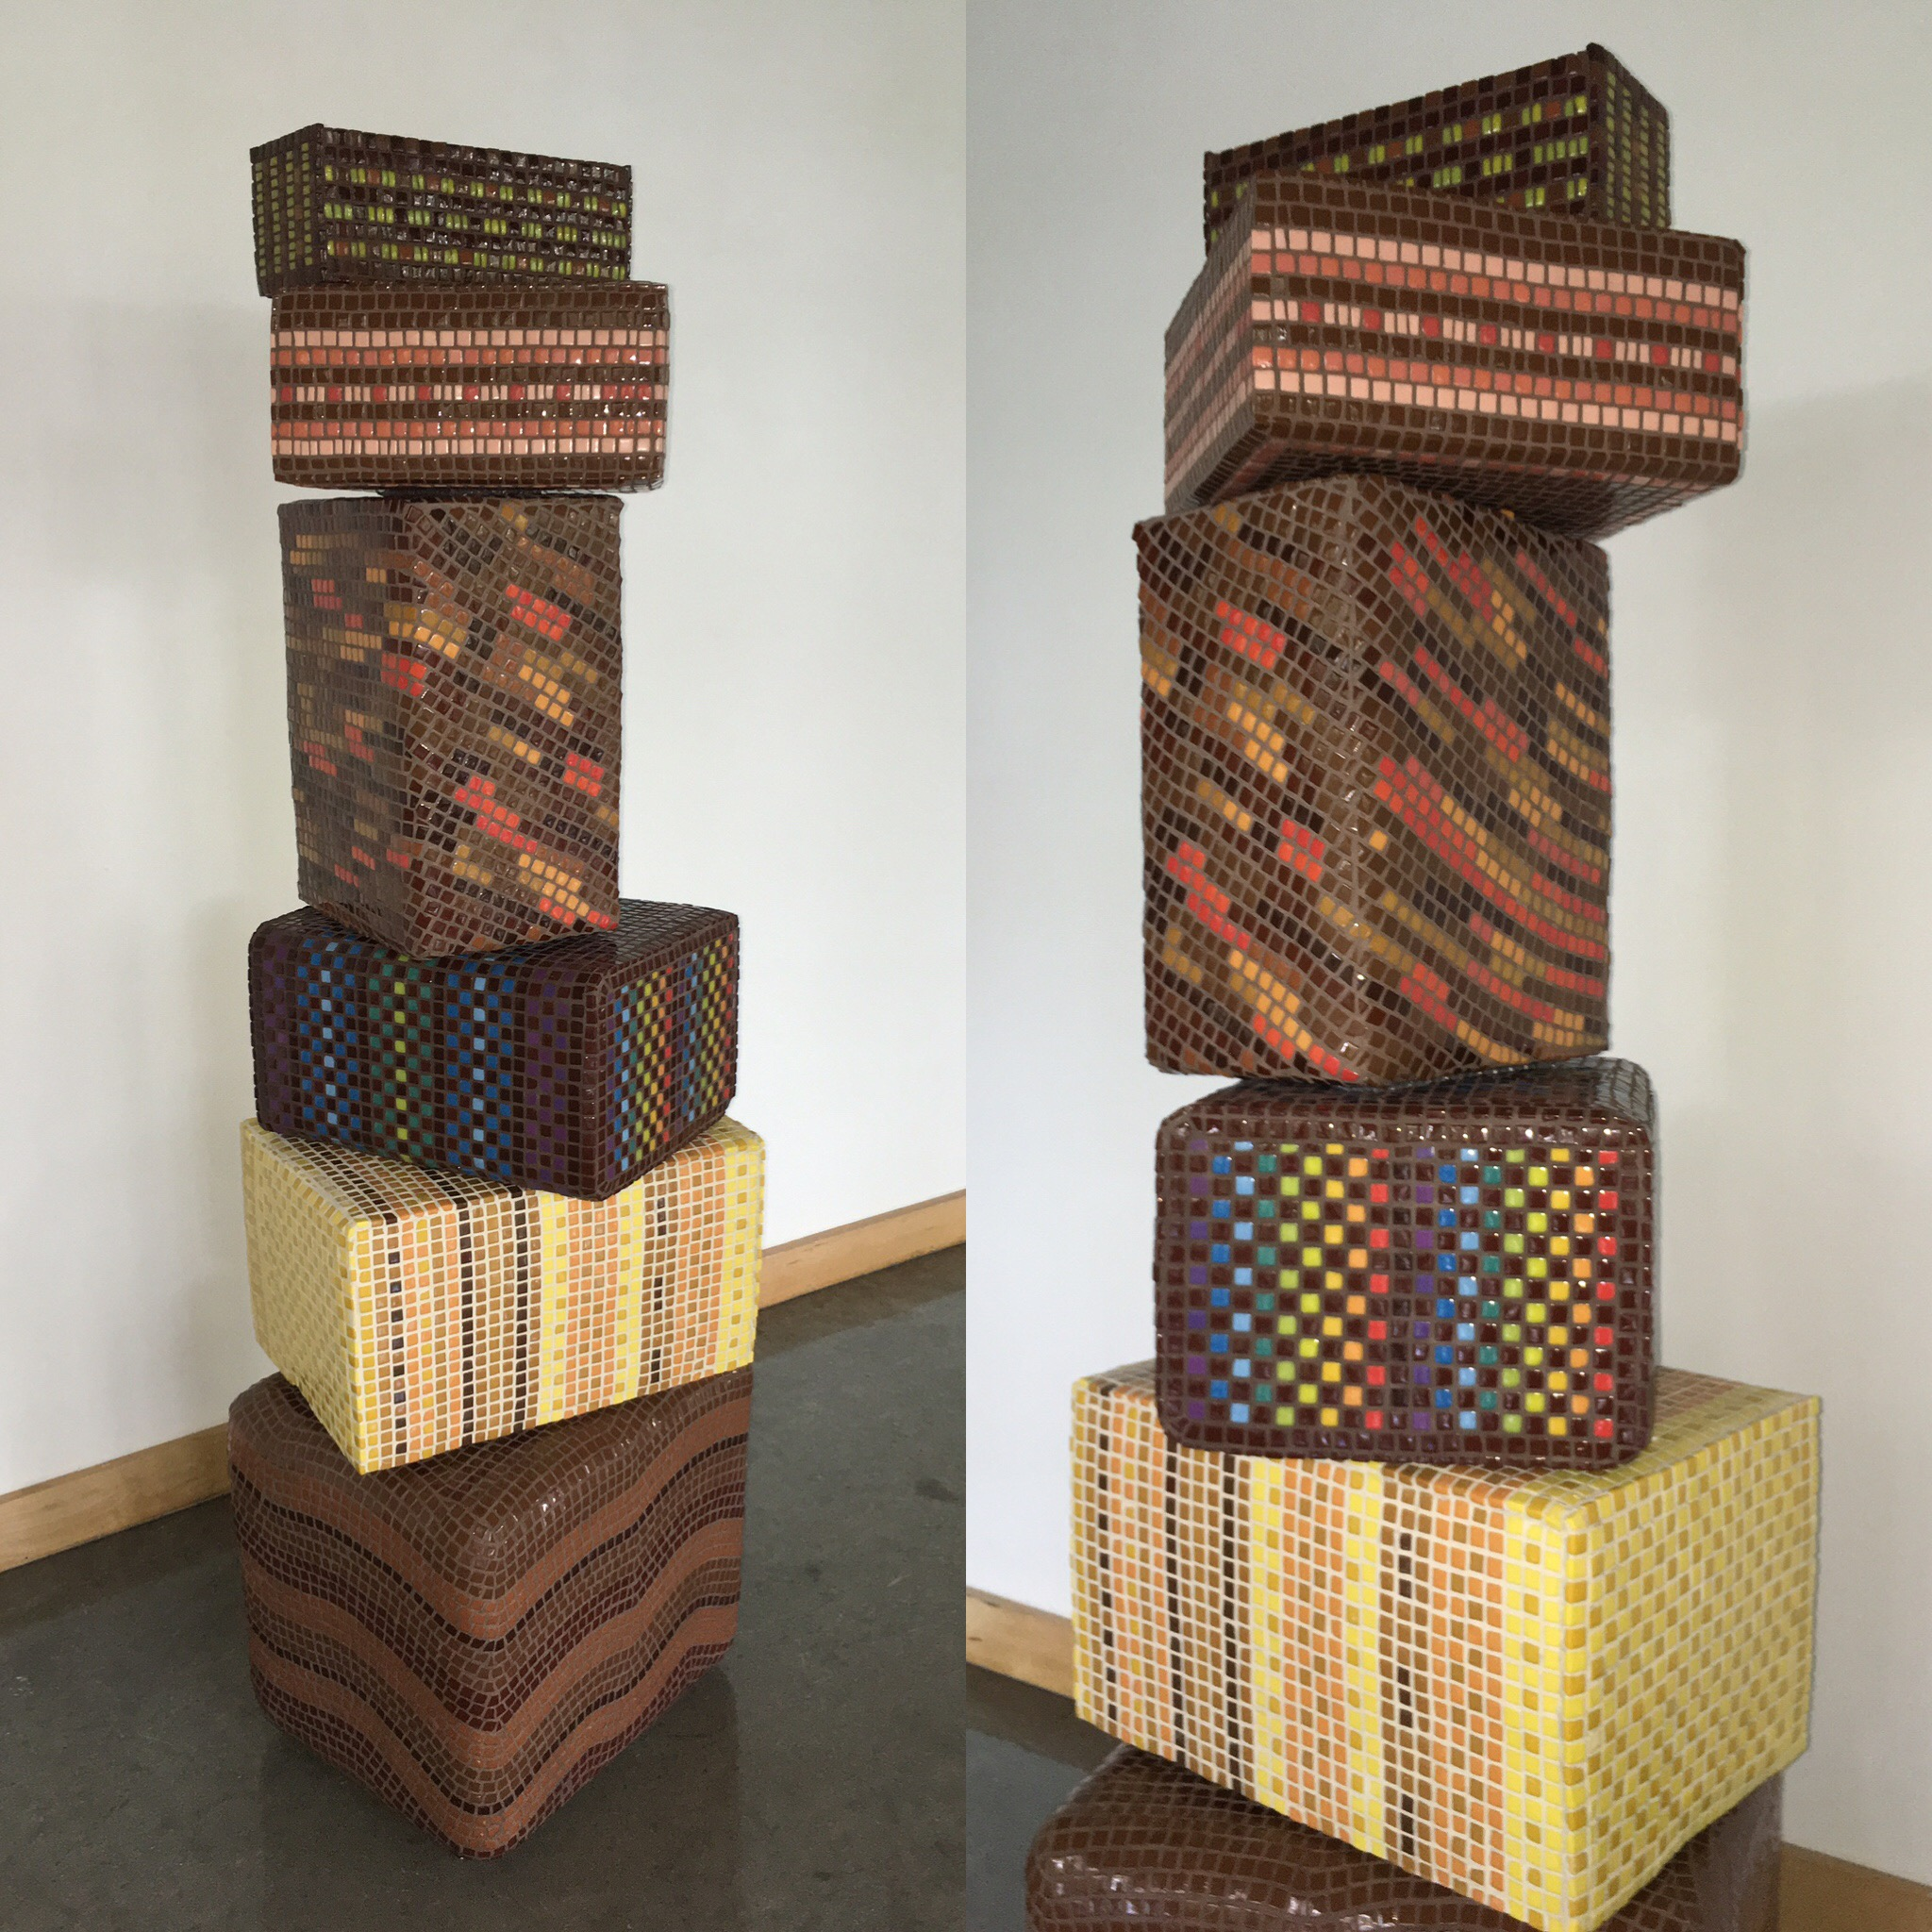 Tower of Unmelting, Chocolatey Truffled Goodness, 2016  60 inches tall.    Enameled glass, styrofoam, plastic, steel and cement-based adhesive. Suitable for outdoors. Inquire for purchase and display information. julierichey@mac.com.